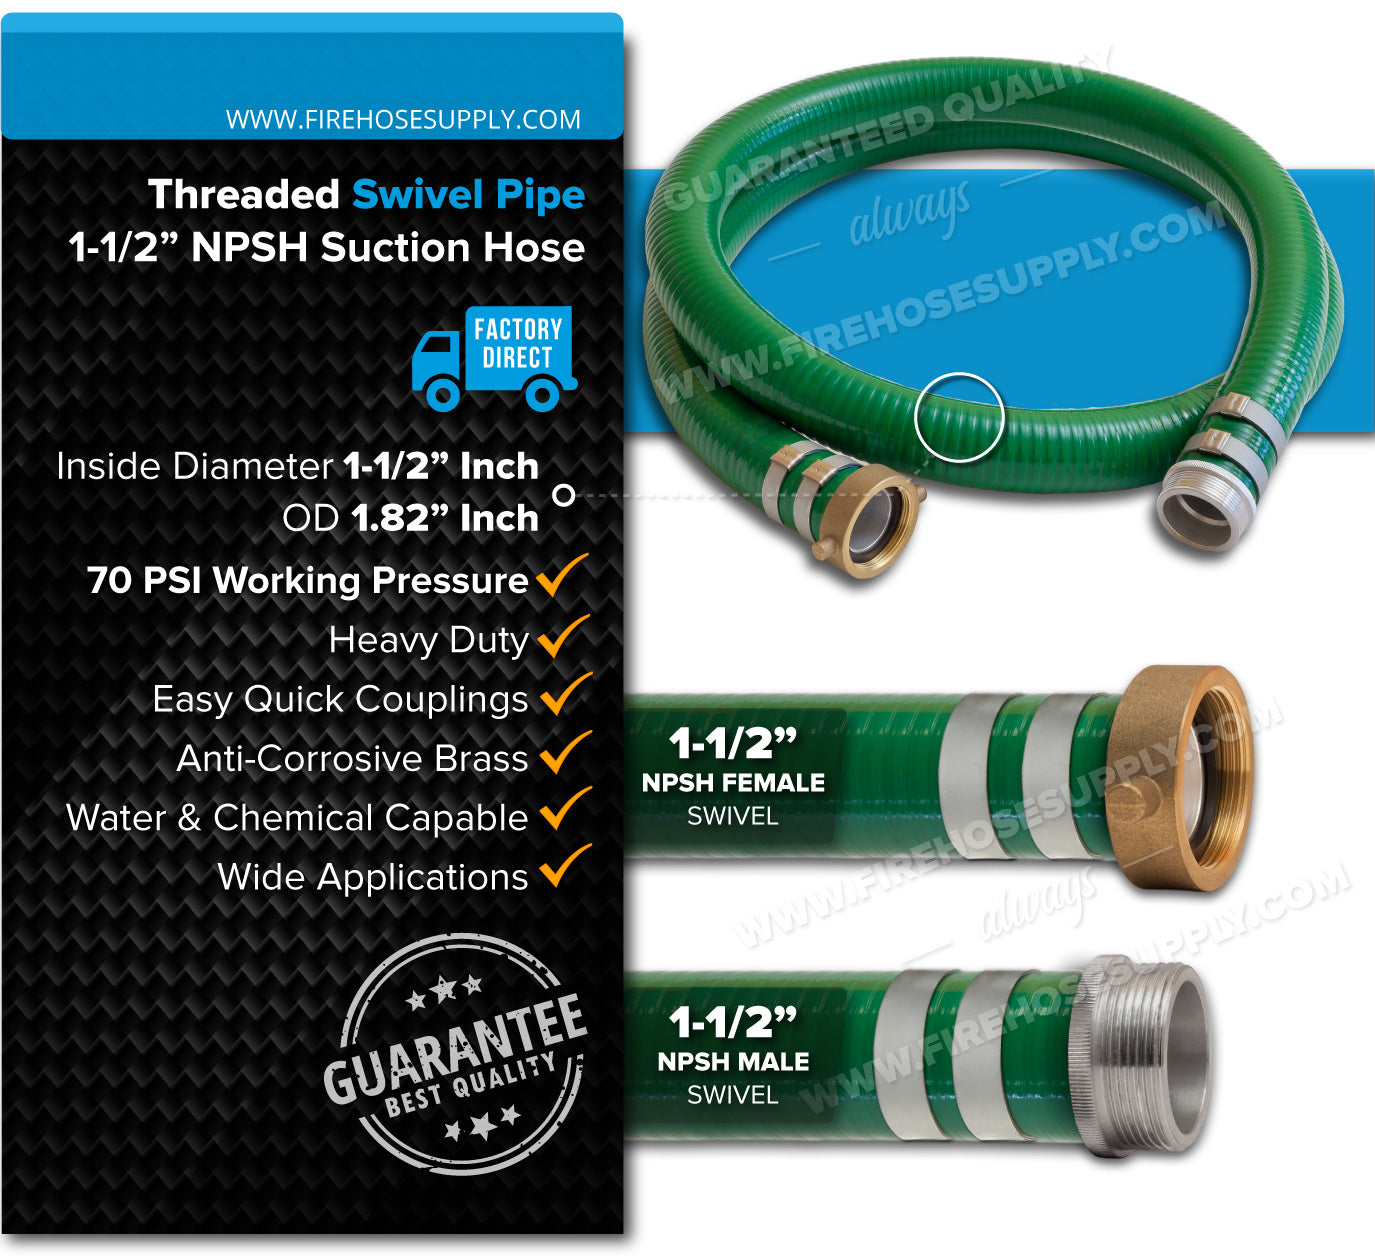 1.5 Inch Threaded Female x Male Green Suction Hose Overview